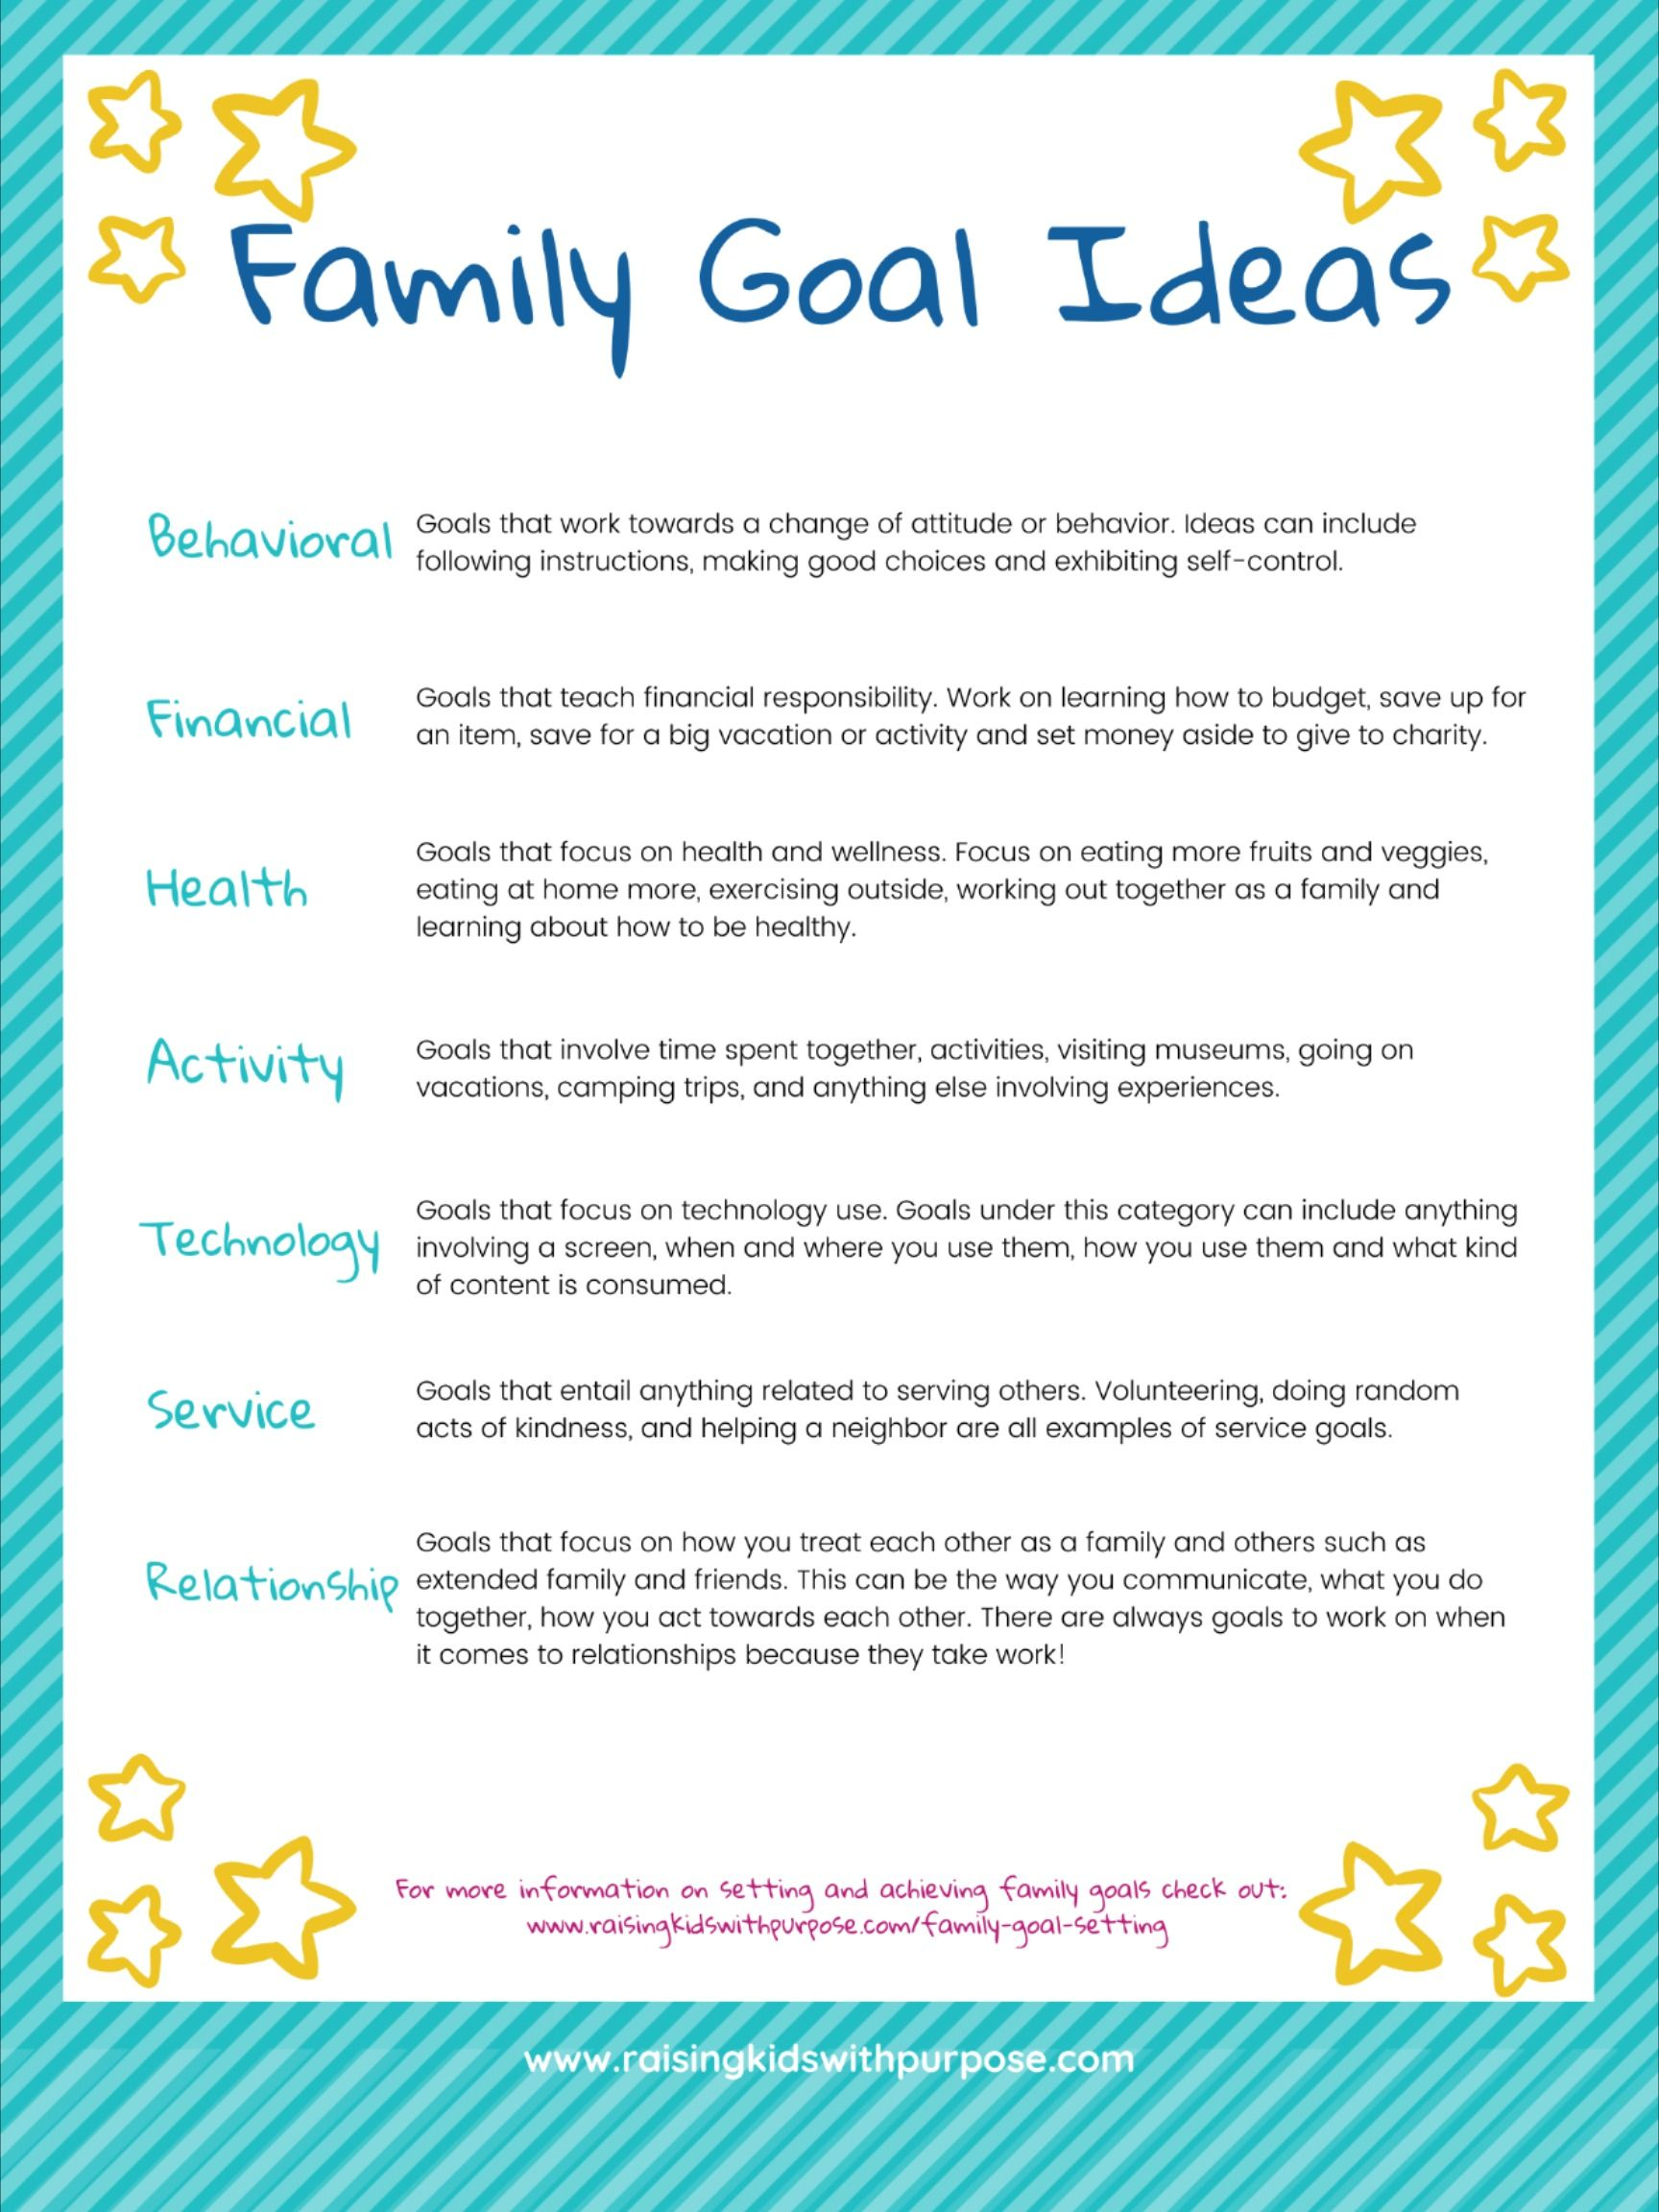 Setting Family Goals Toolkit In